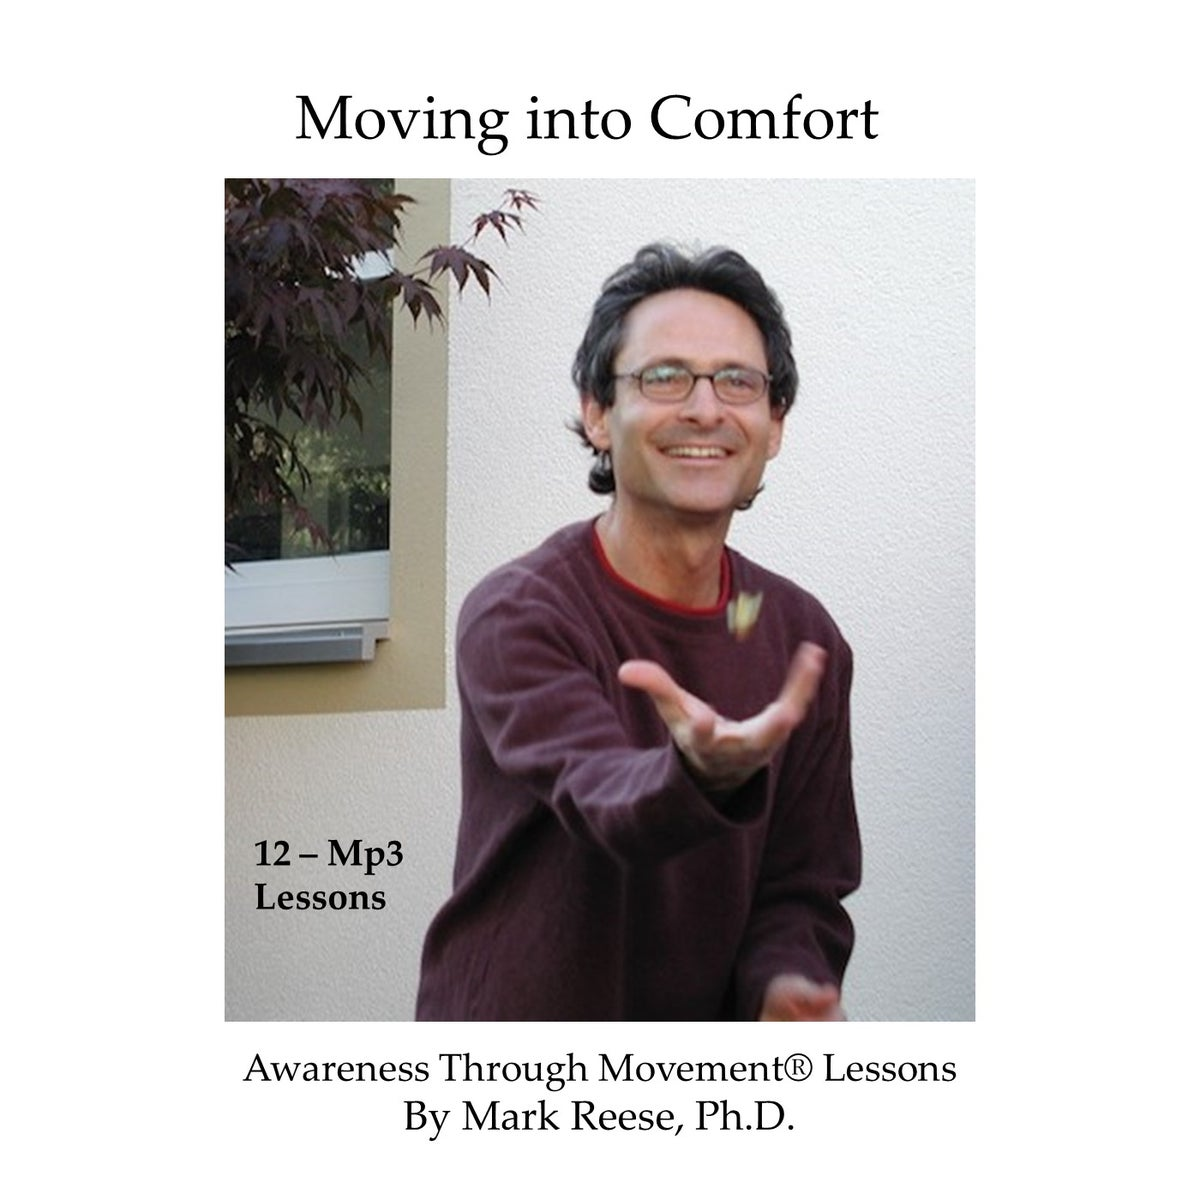 Image of Moving into Comfort